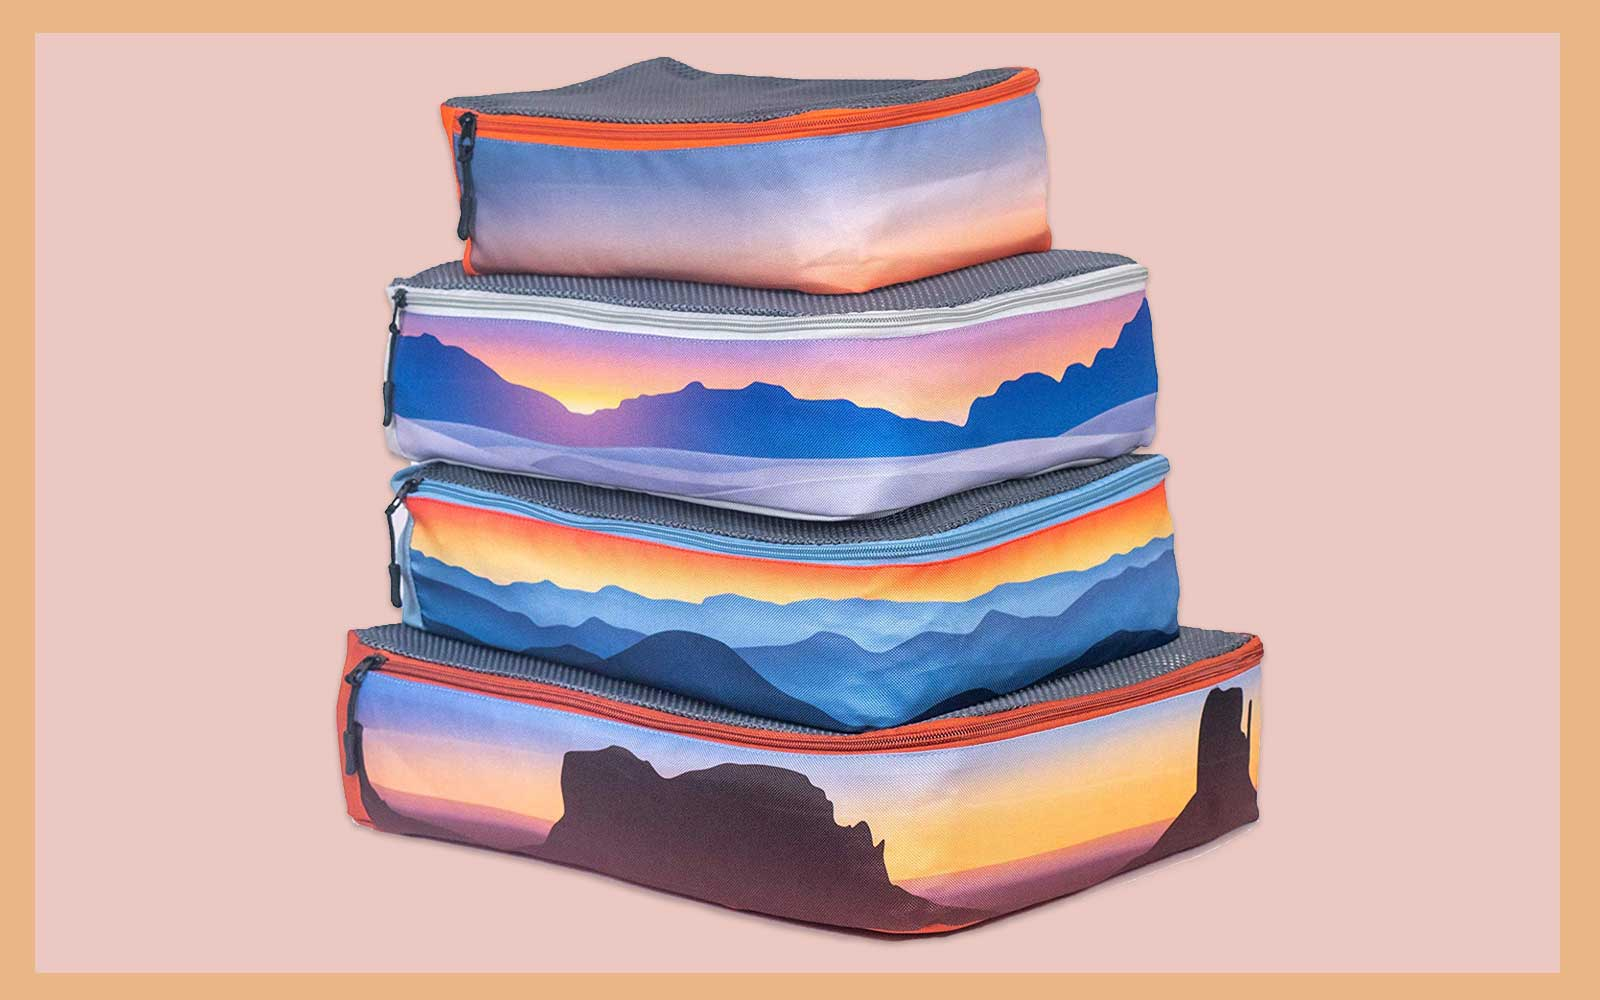 Printed National Parks-themed Packing Cubes